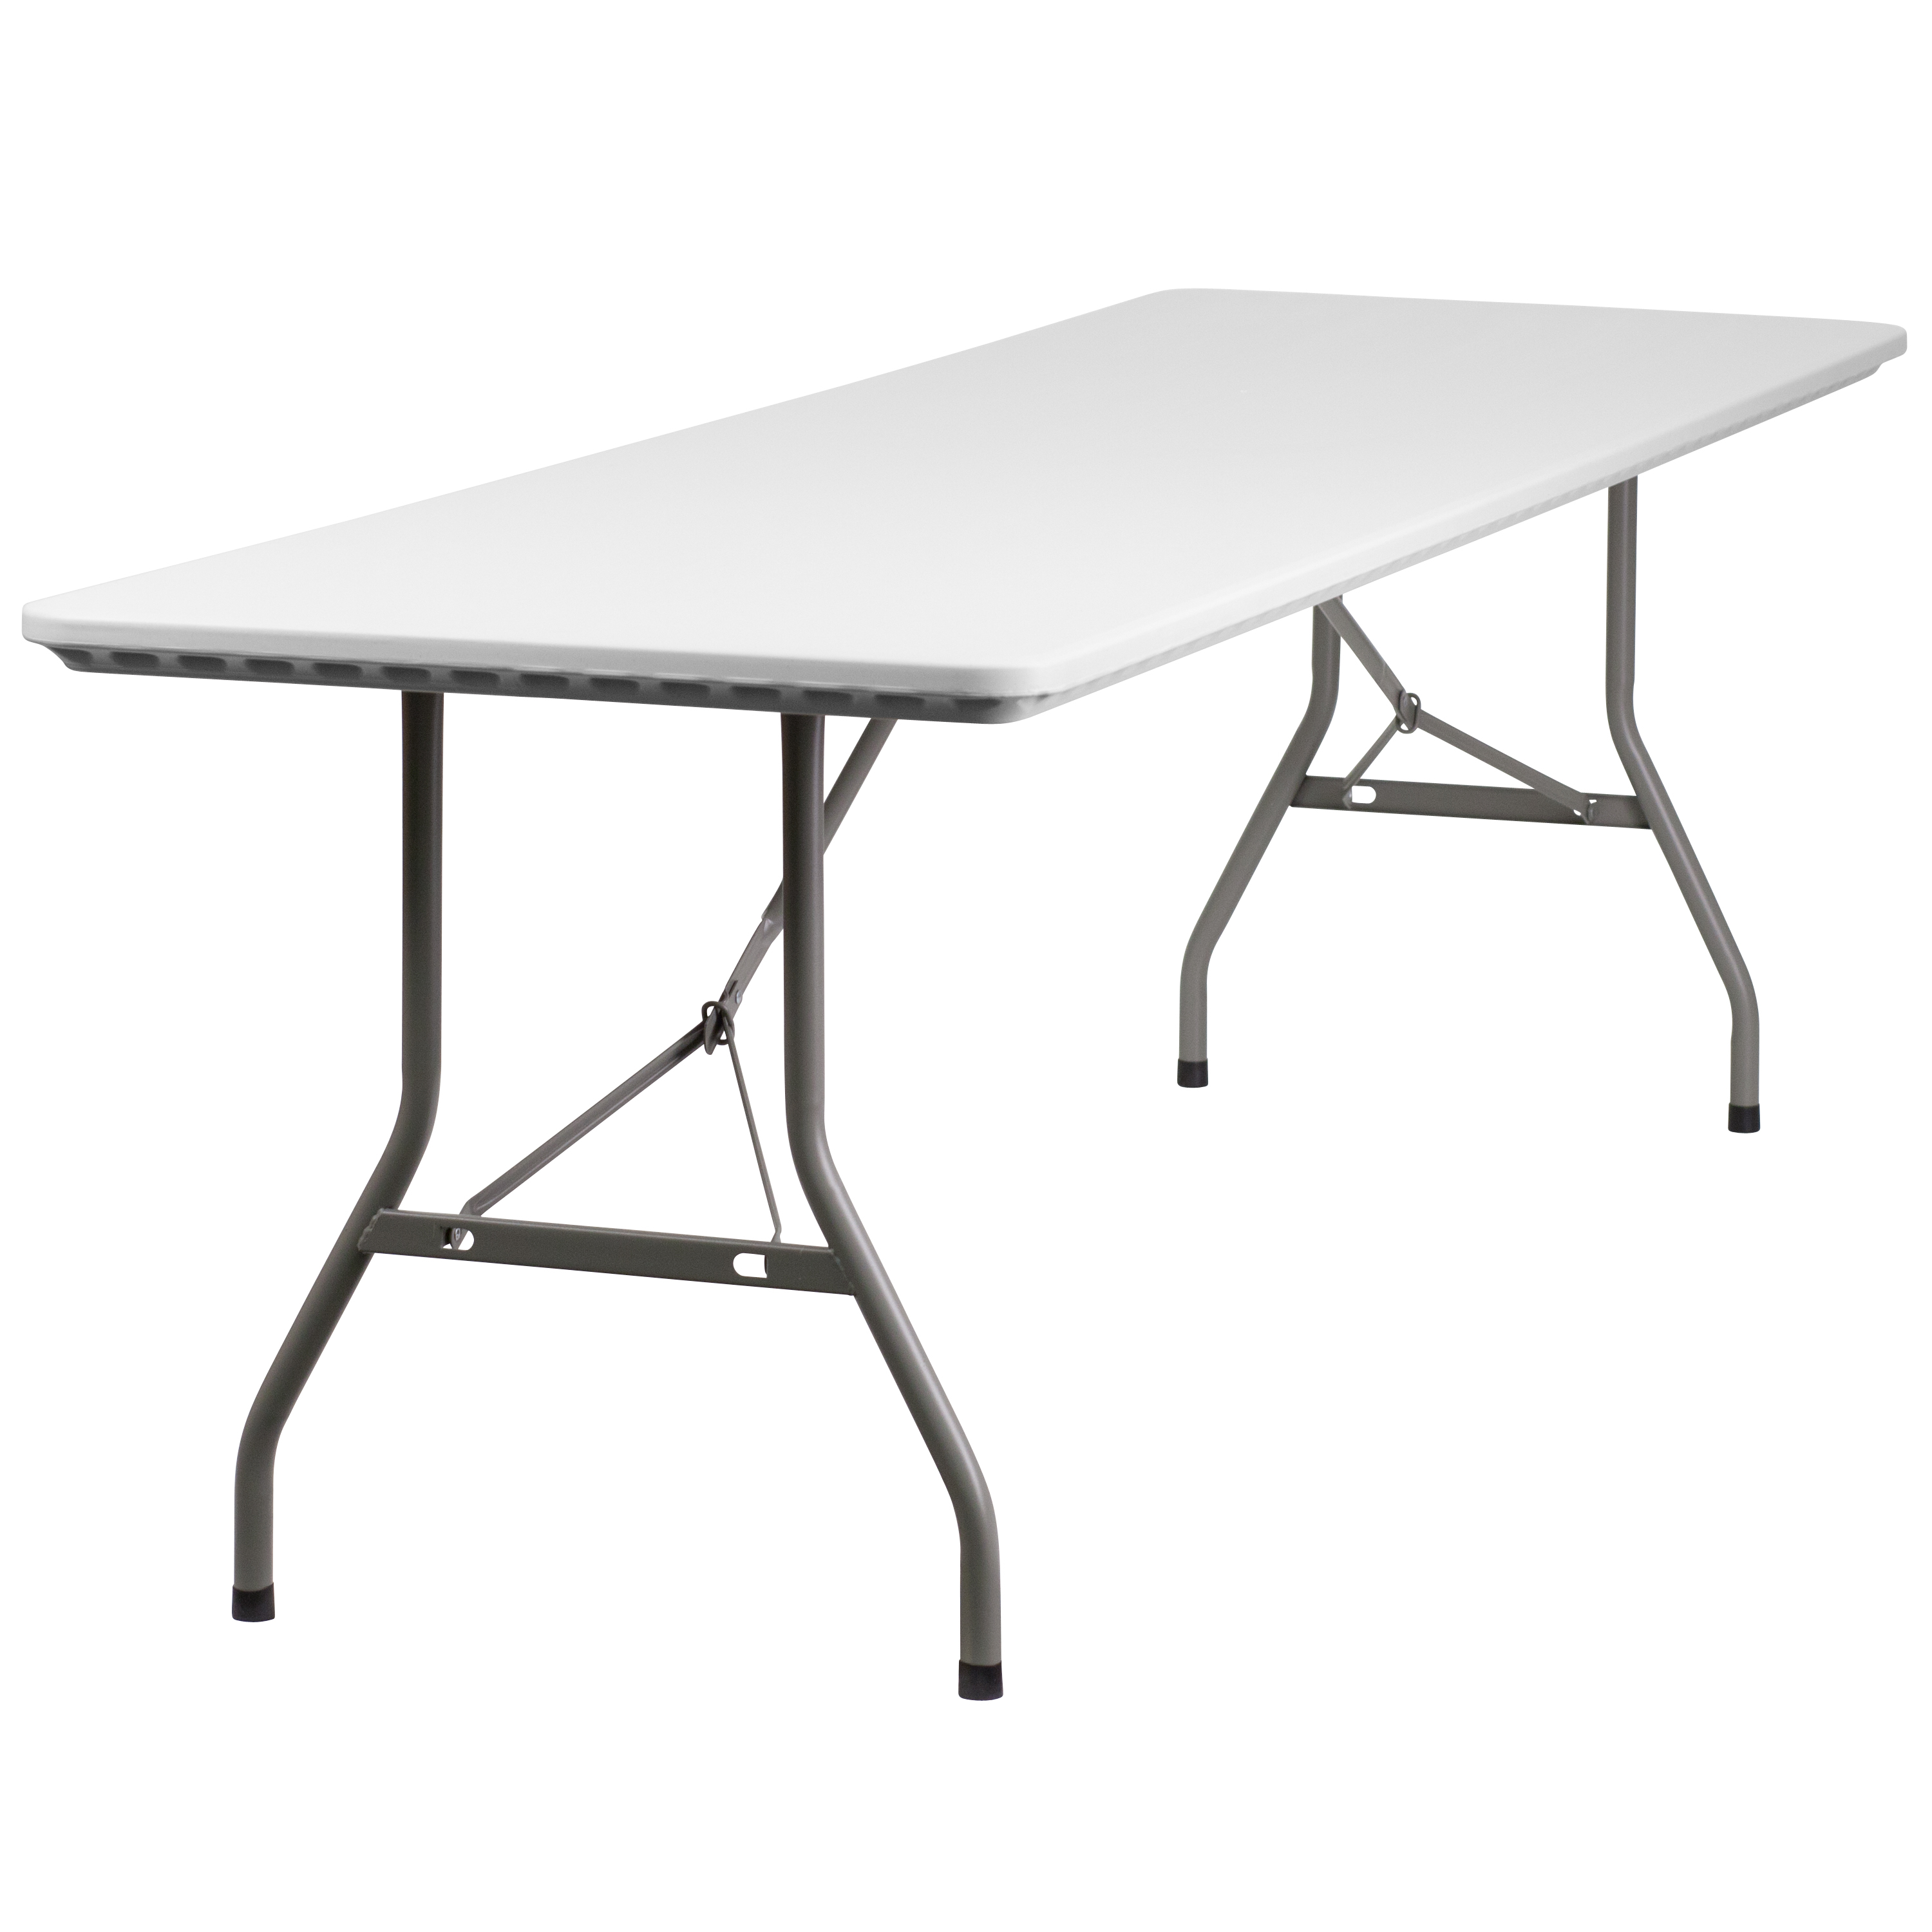 8ft Folding Table picture on 8ft Folding Table30w_x_96l_plastic_folding_table with 8ft Folding Table, Folding Table d2564438802df90e3128b9f5837120a8